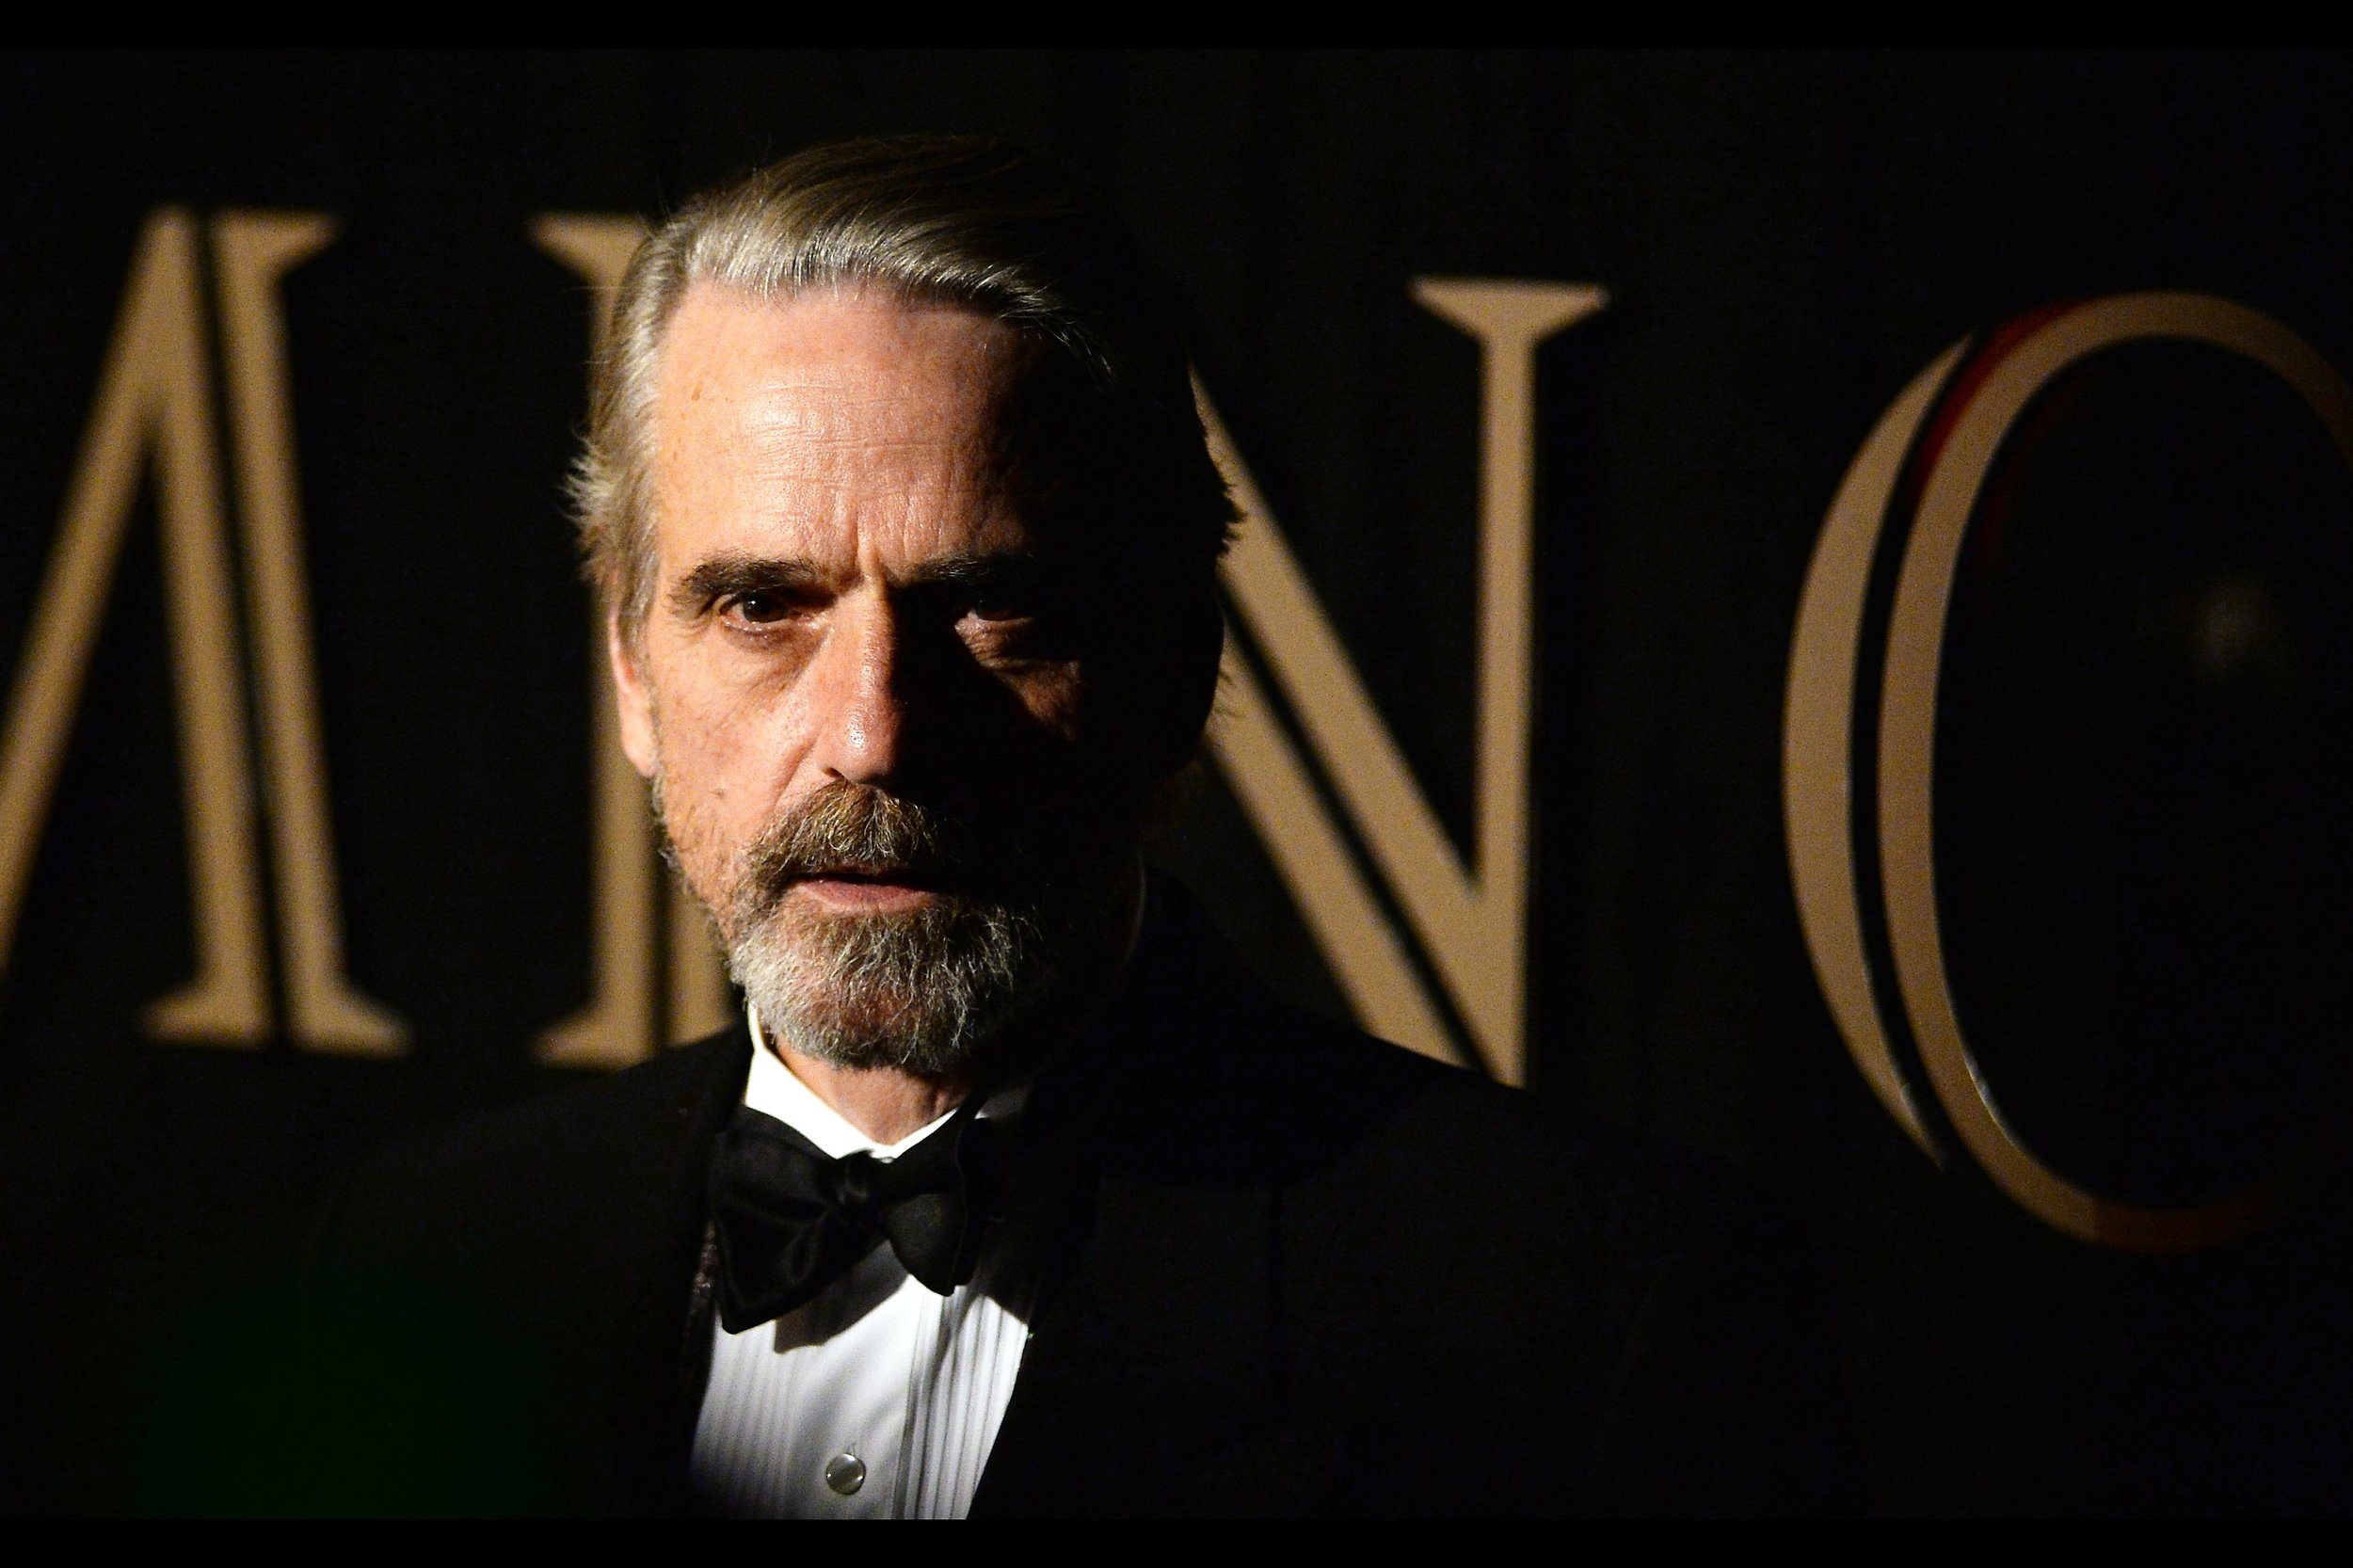 October 3rd : It's a bit of a 'hidden' event that only seems to take place every second (?) year, but    BFI Luminous    has quite the star power - from Jeremy Irons to Australia's own Baz Luhrman.